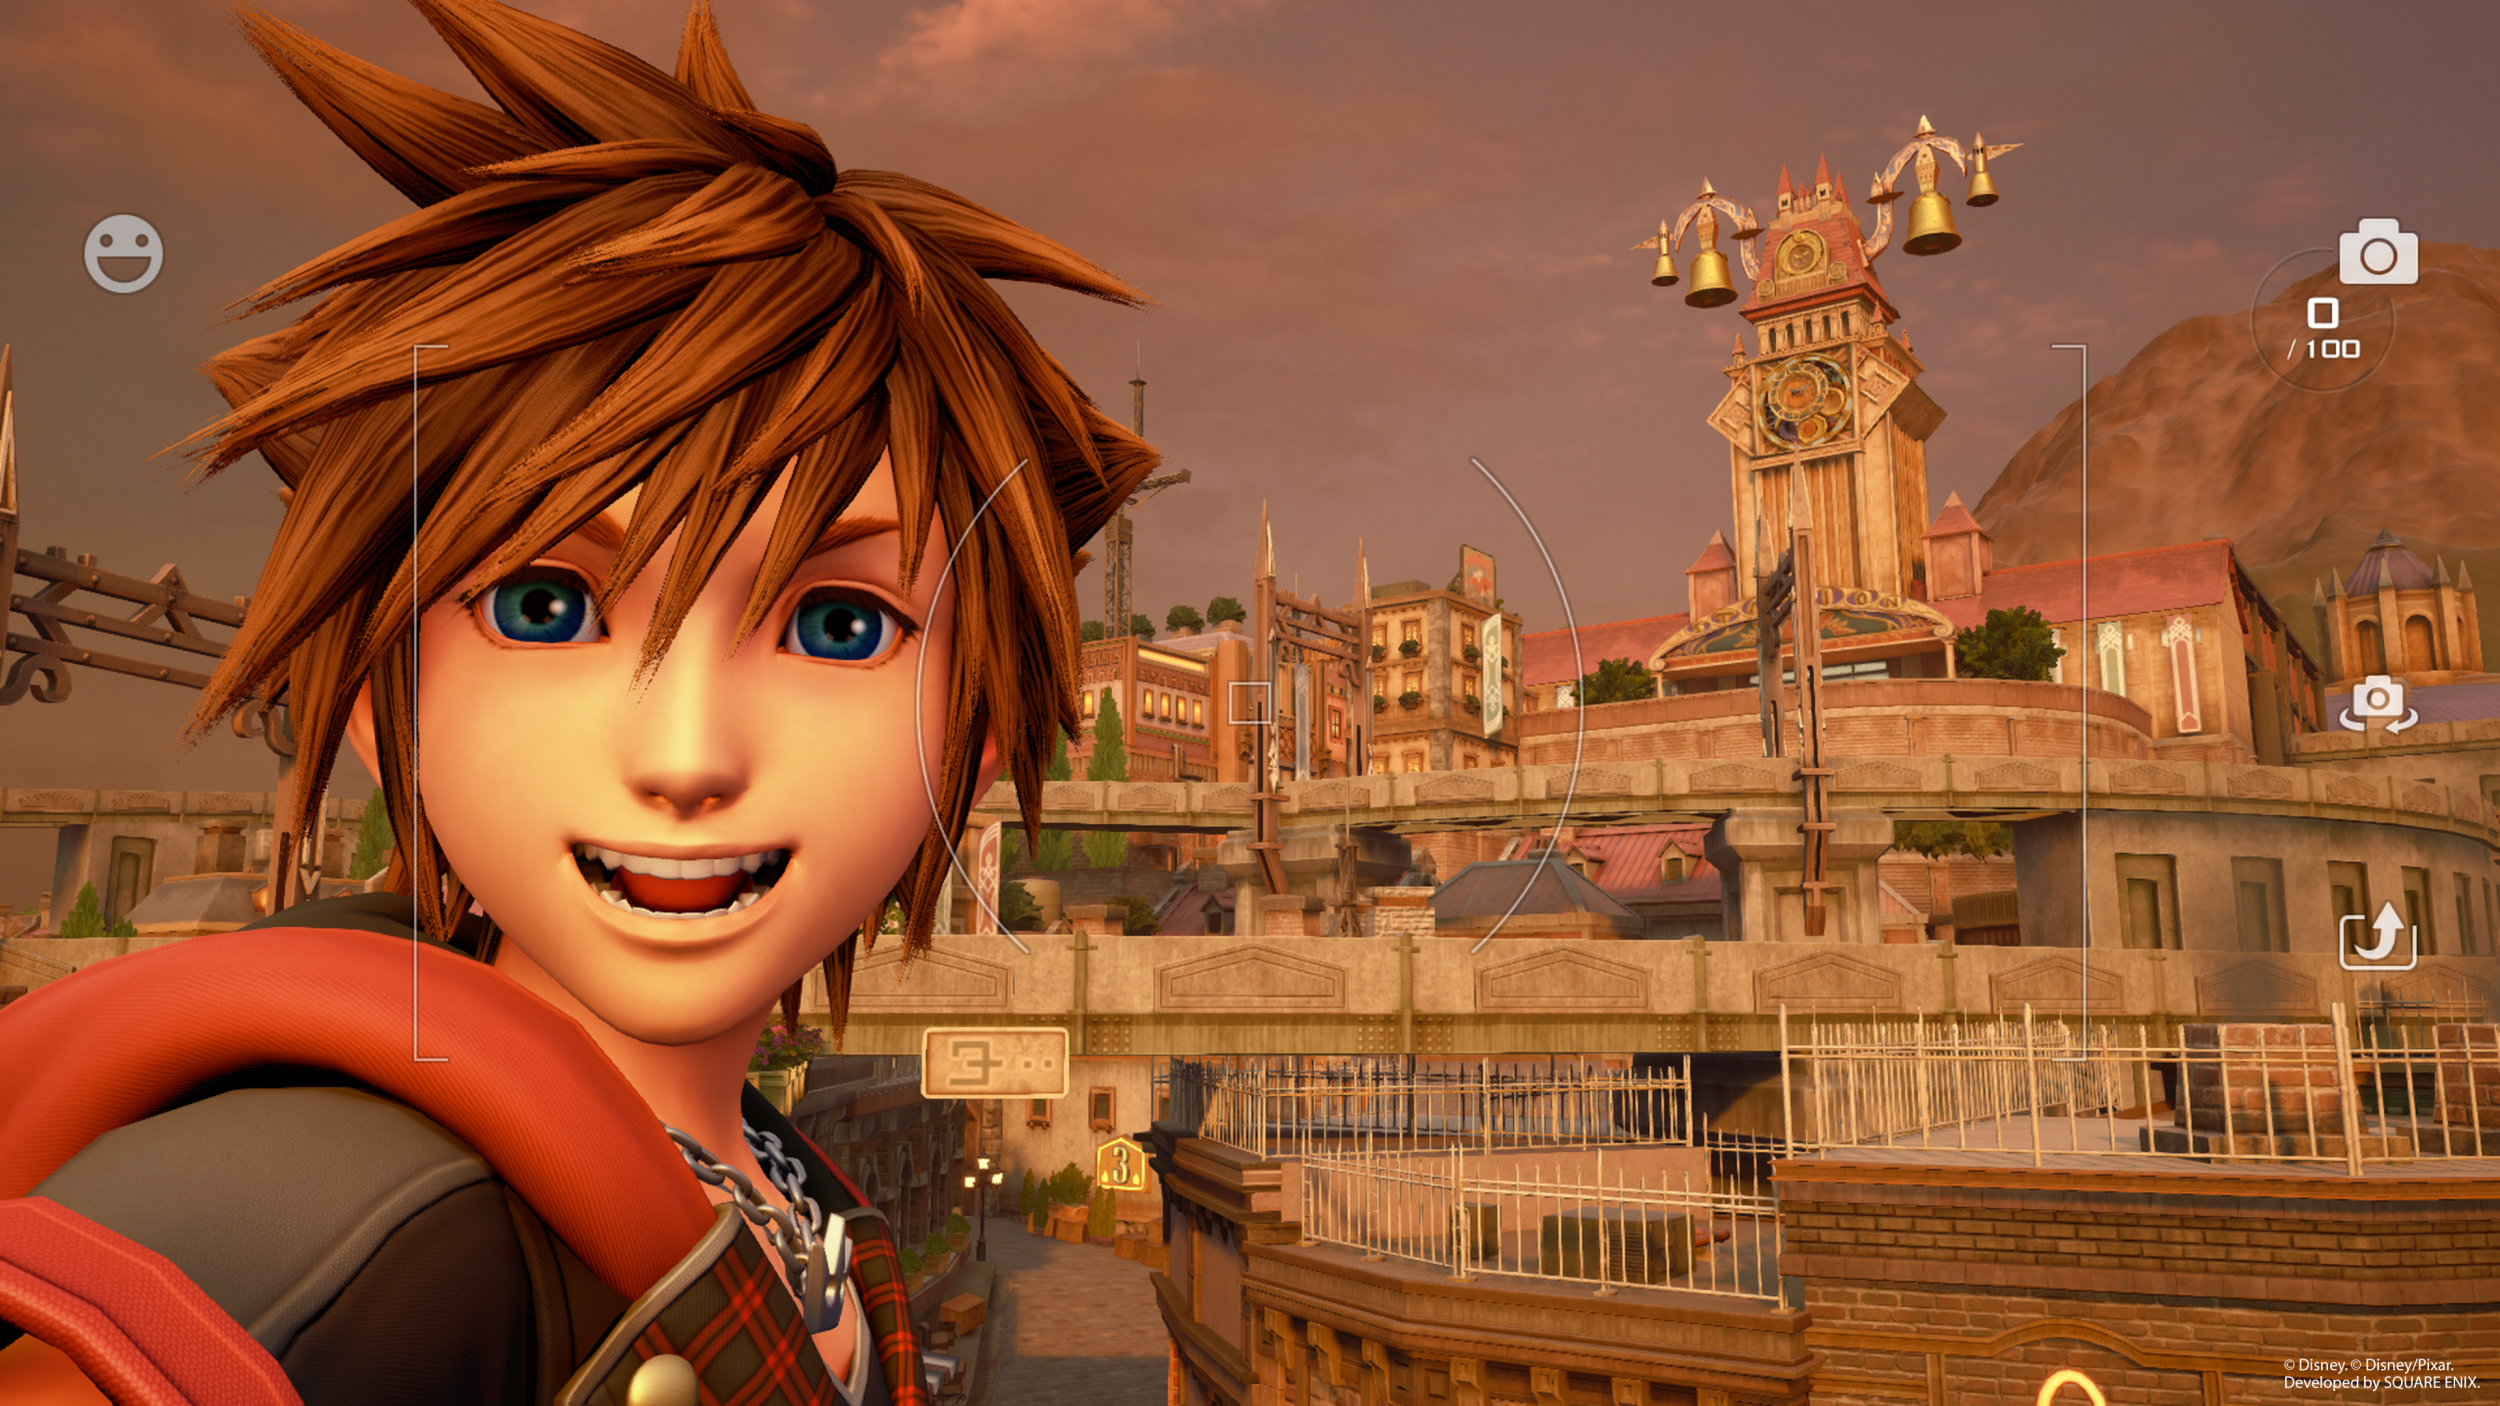 Kingdom Hearts 3 Photo Missions Guide